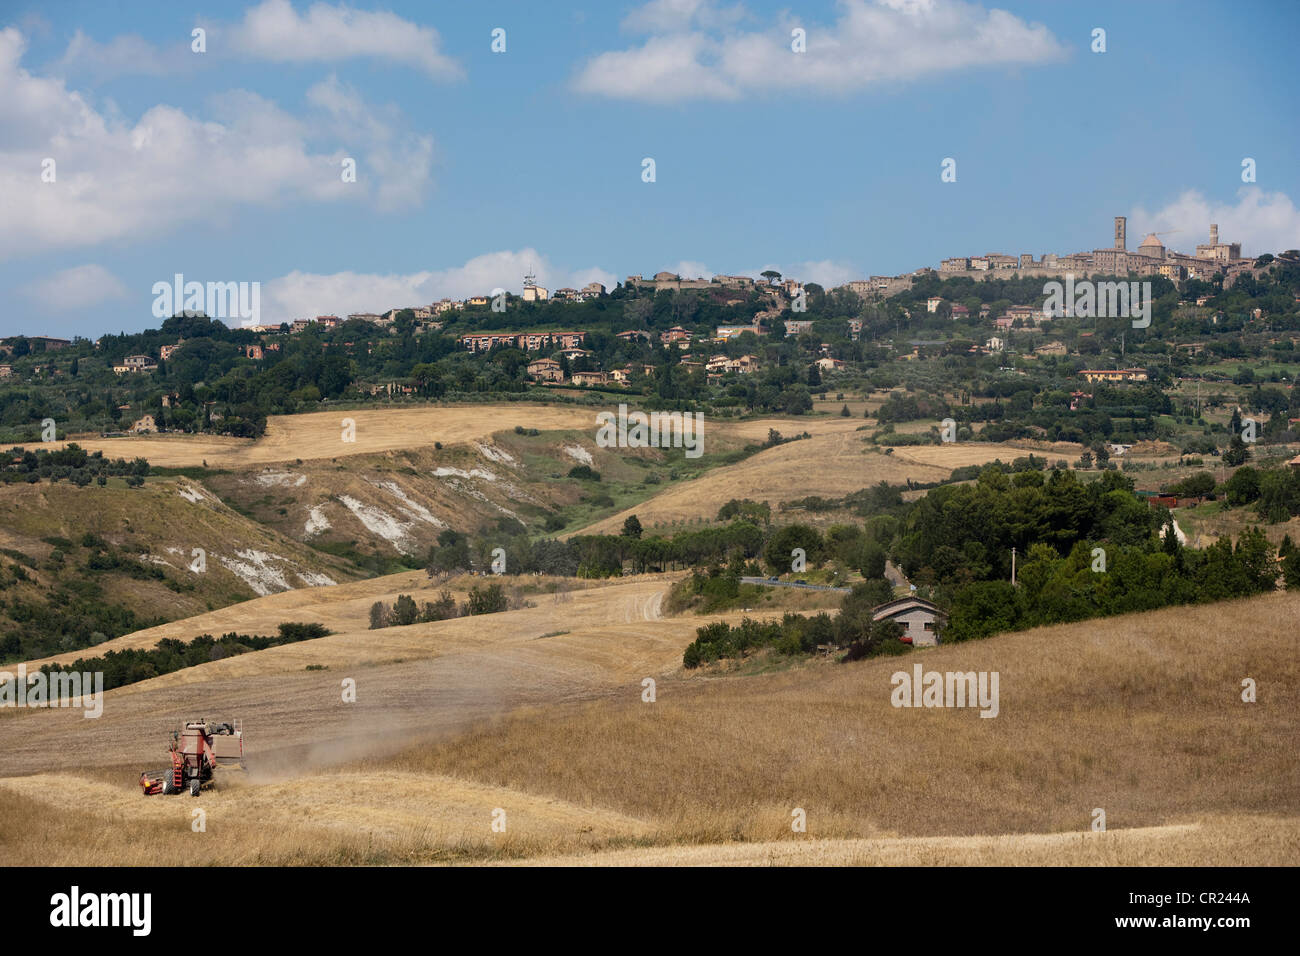 Machinery at work in crop fields - Stock Image